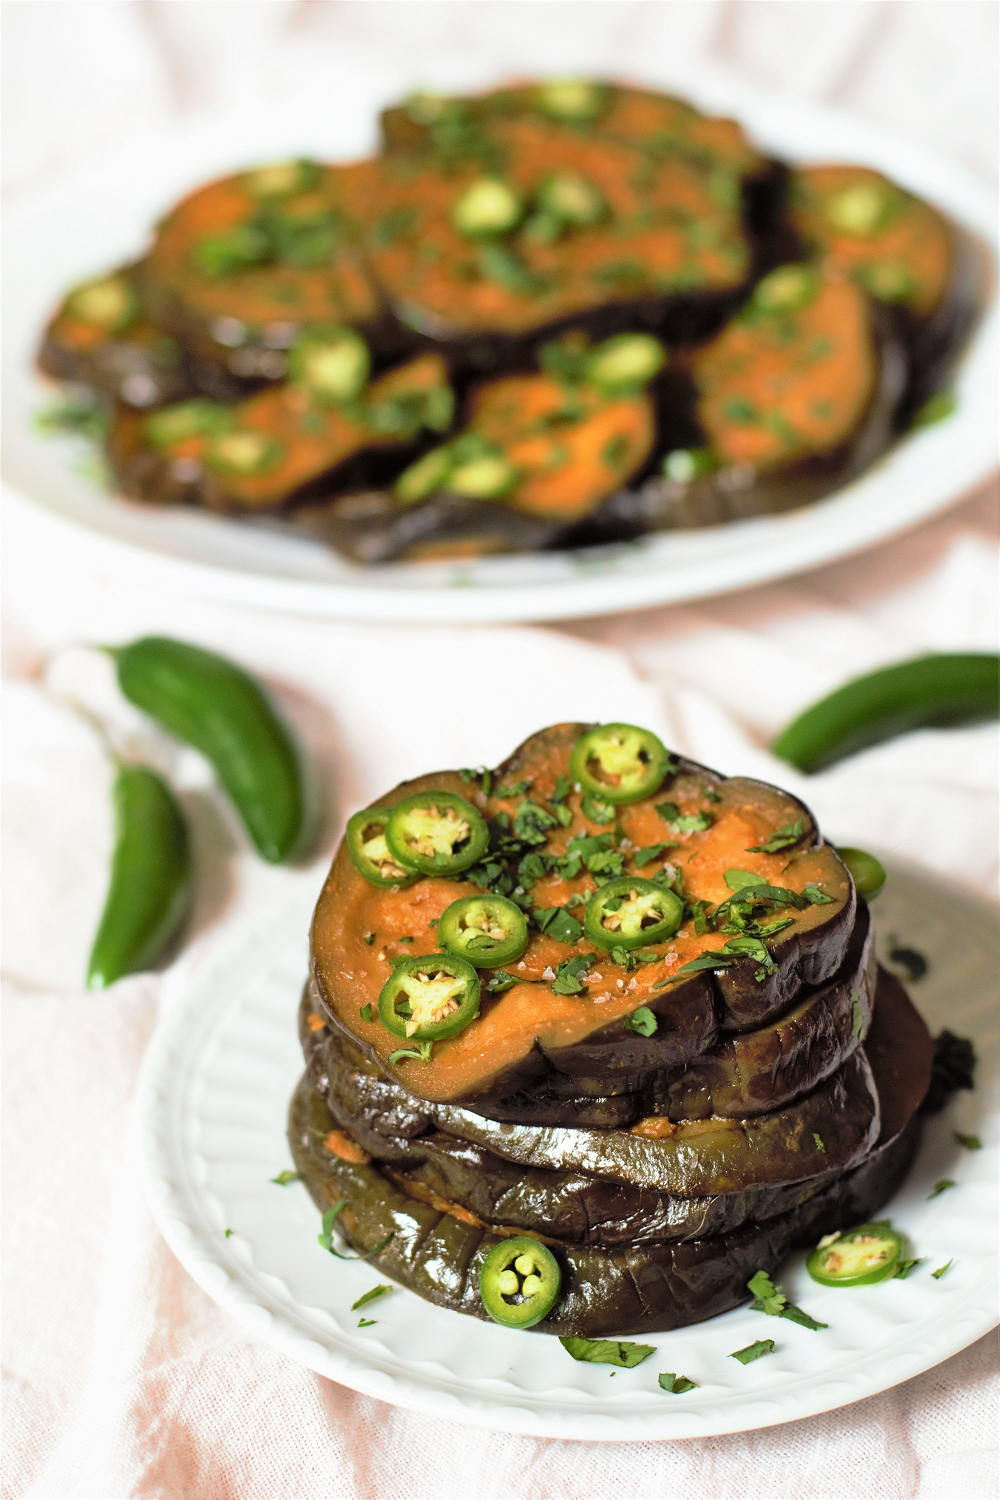 Sous Vide Curried Eggplant | Mountain Cravings